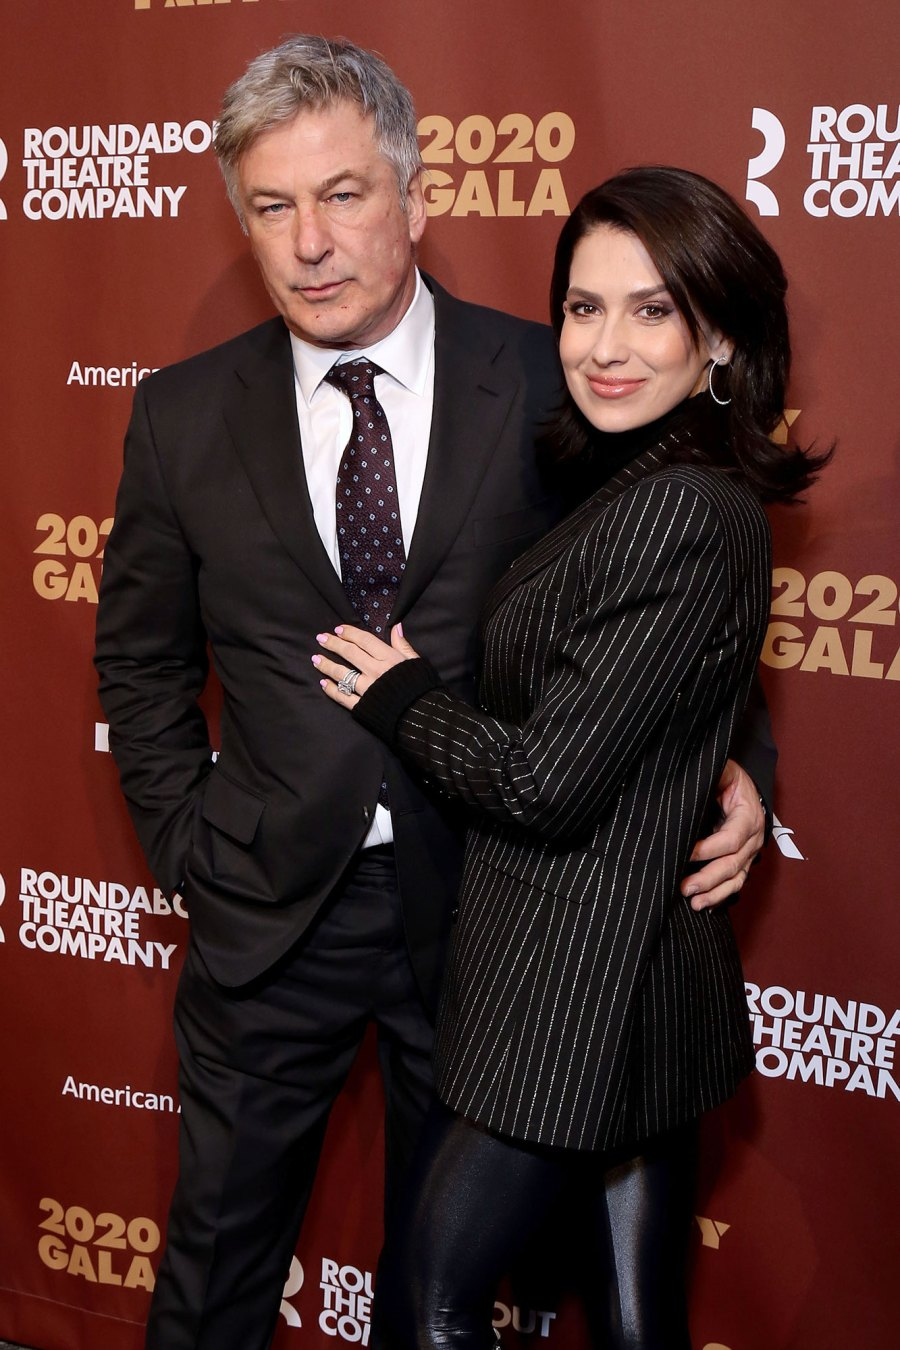 Alec Baldwin and Hilaria Thomas Celebrities Who Fell in Love With Non-Famous People